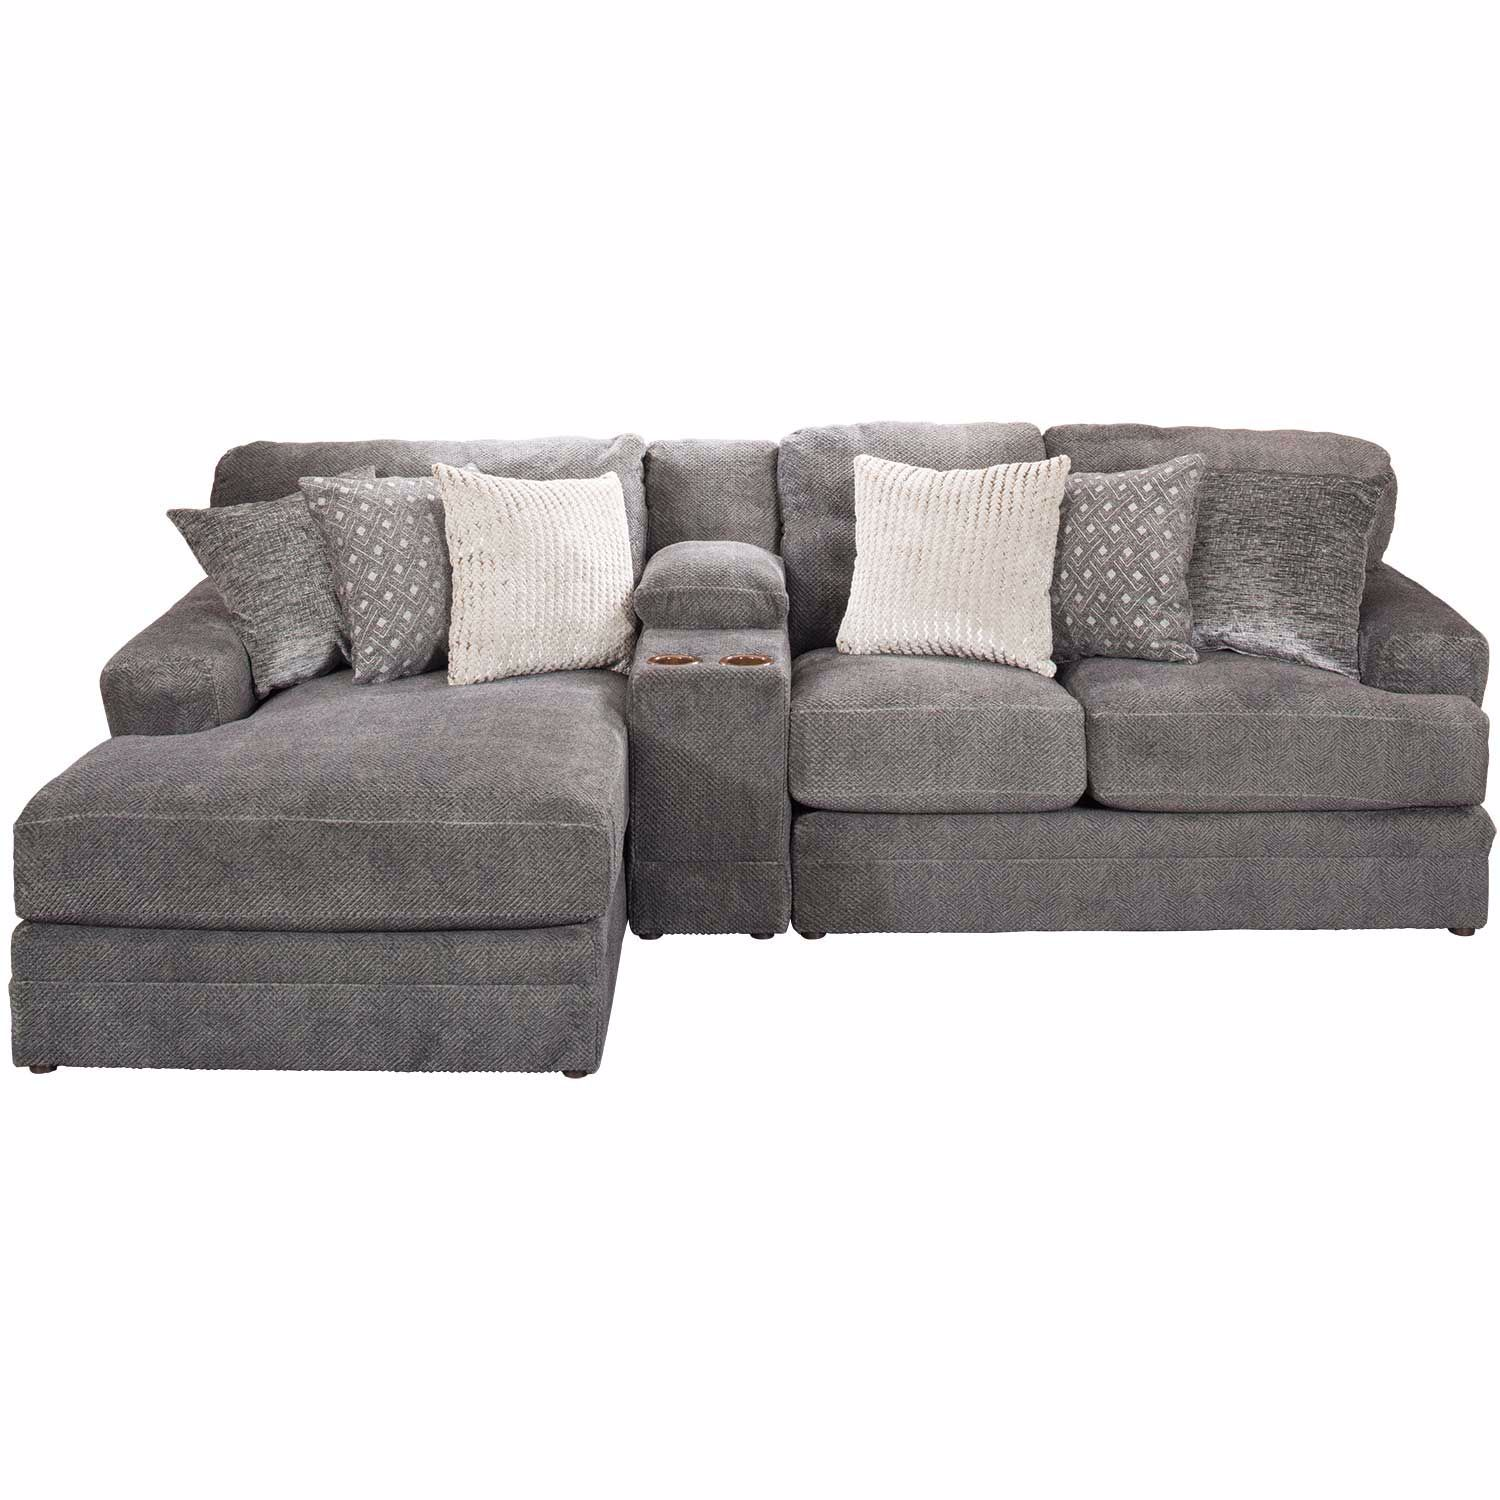 Picture of Mammoth 3 Piece Sectional with LAF Chaise and RAF Loveseat